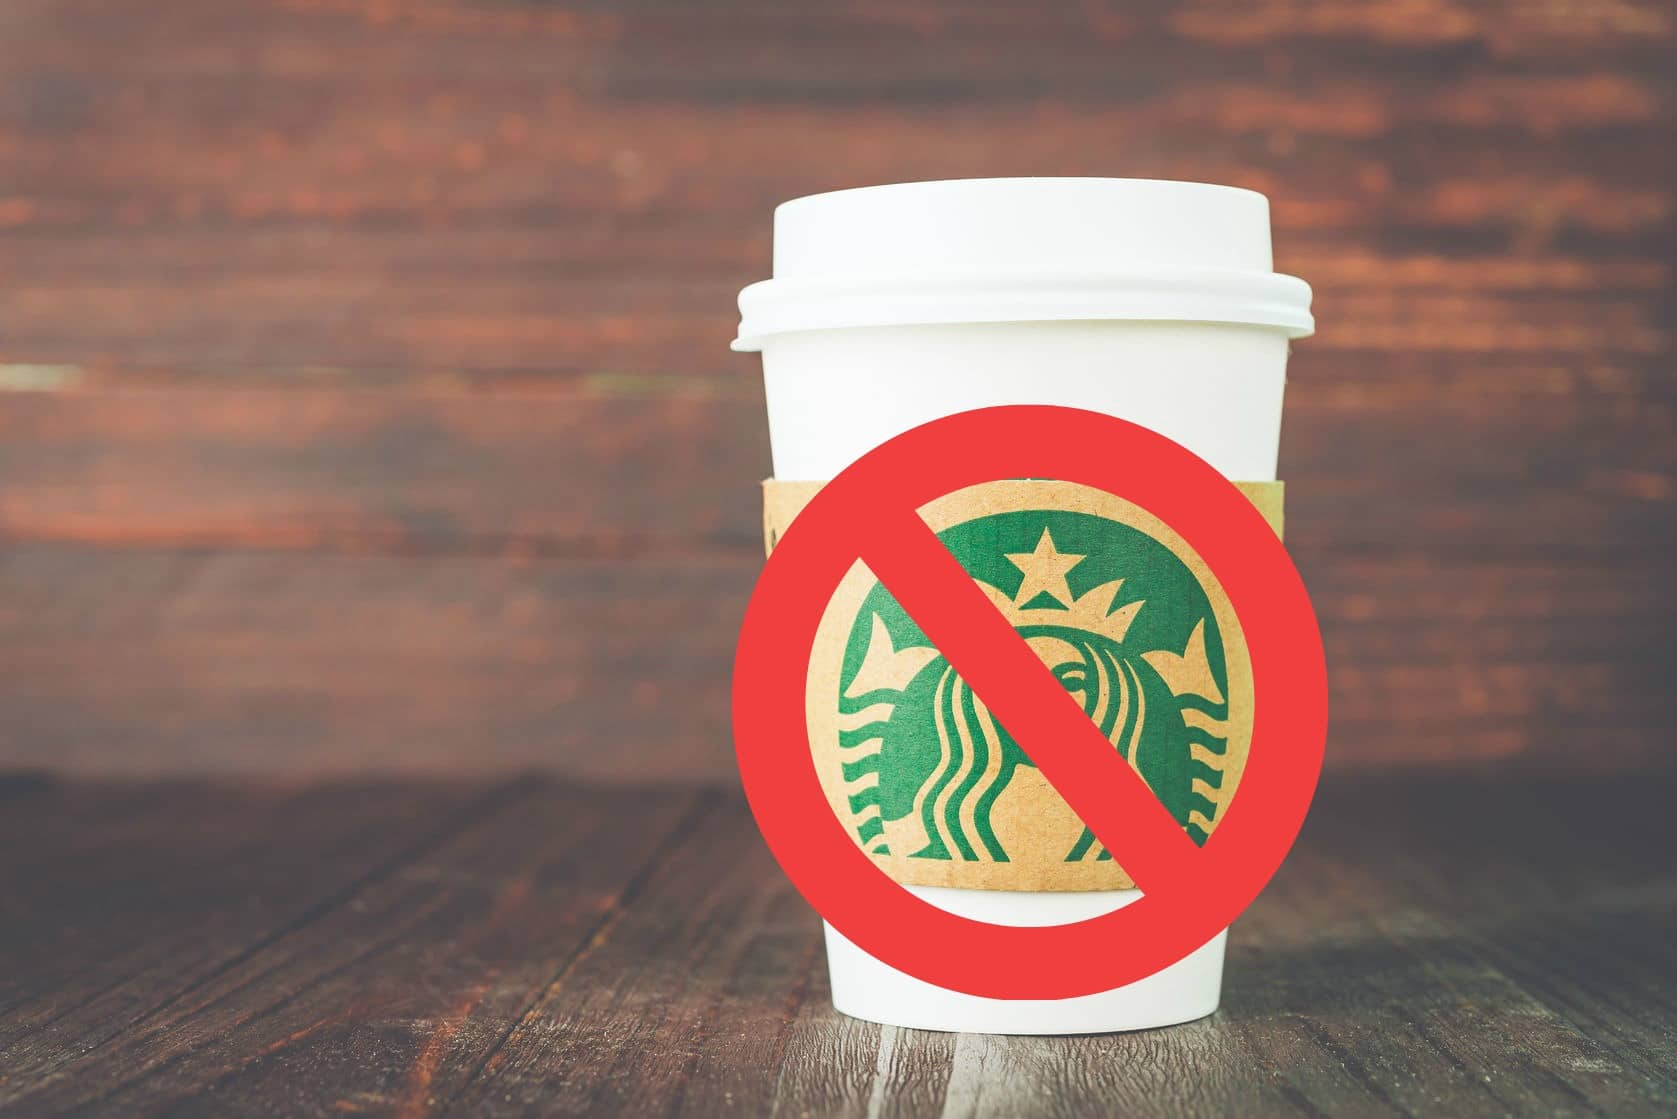 If you want to save, it may be time to cut the Starbucks habit and enjoy your coffee at home.